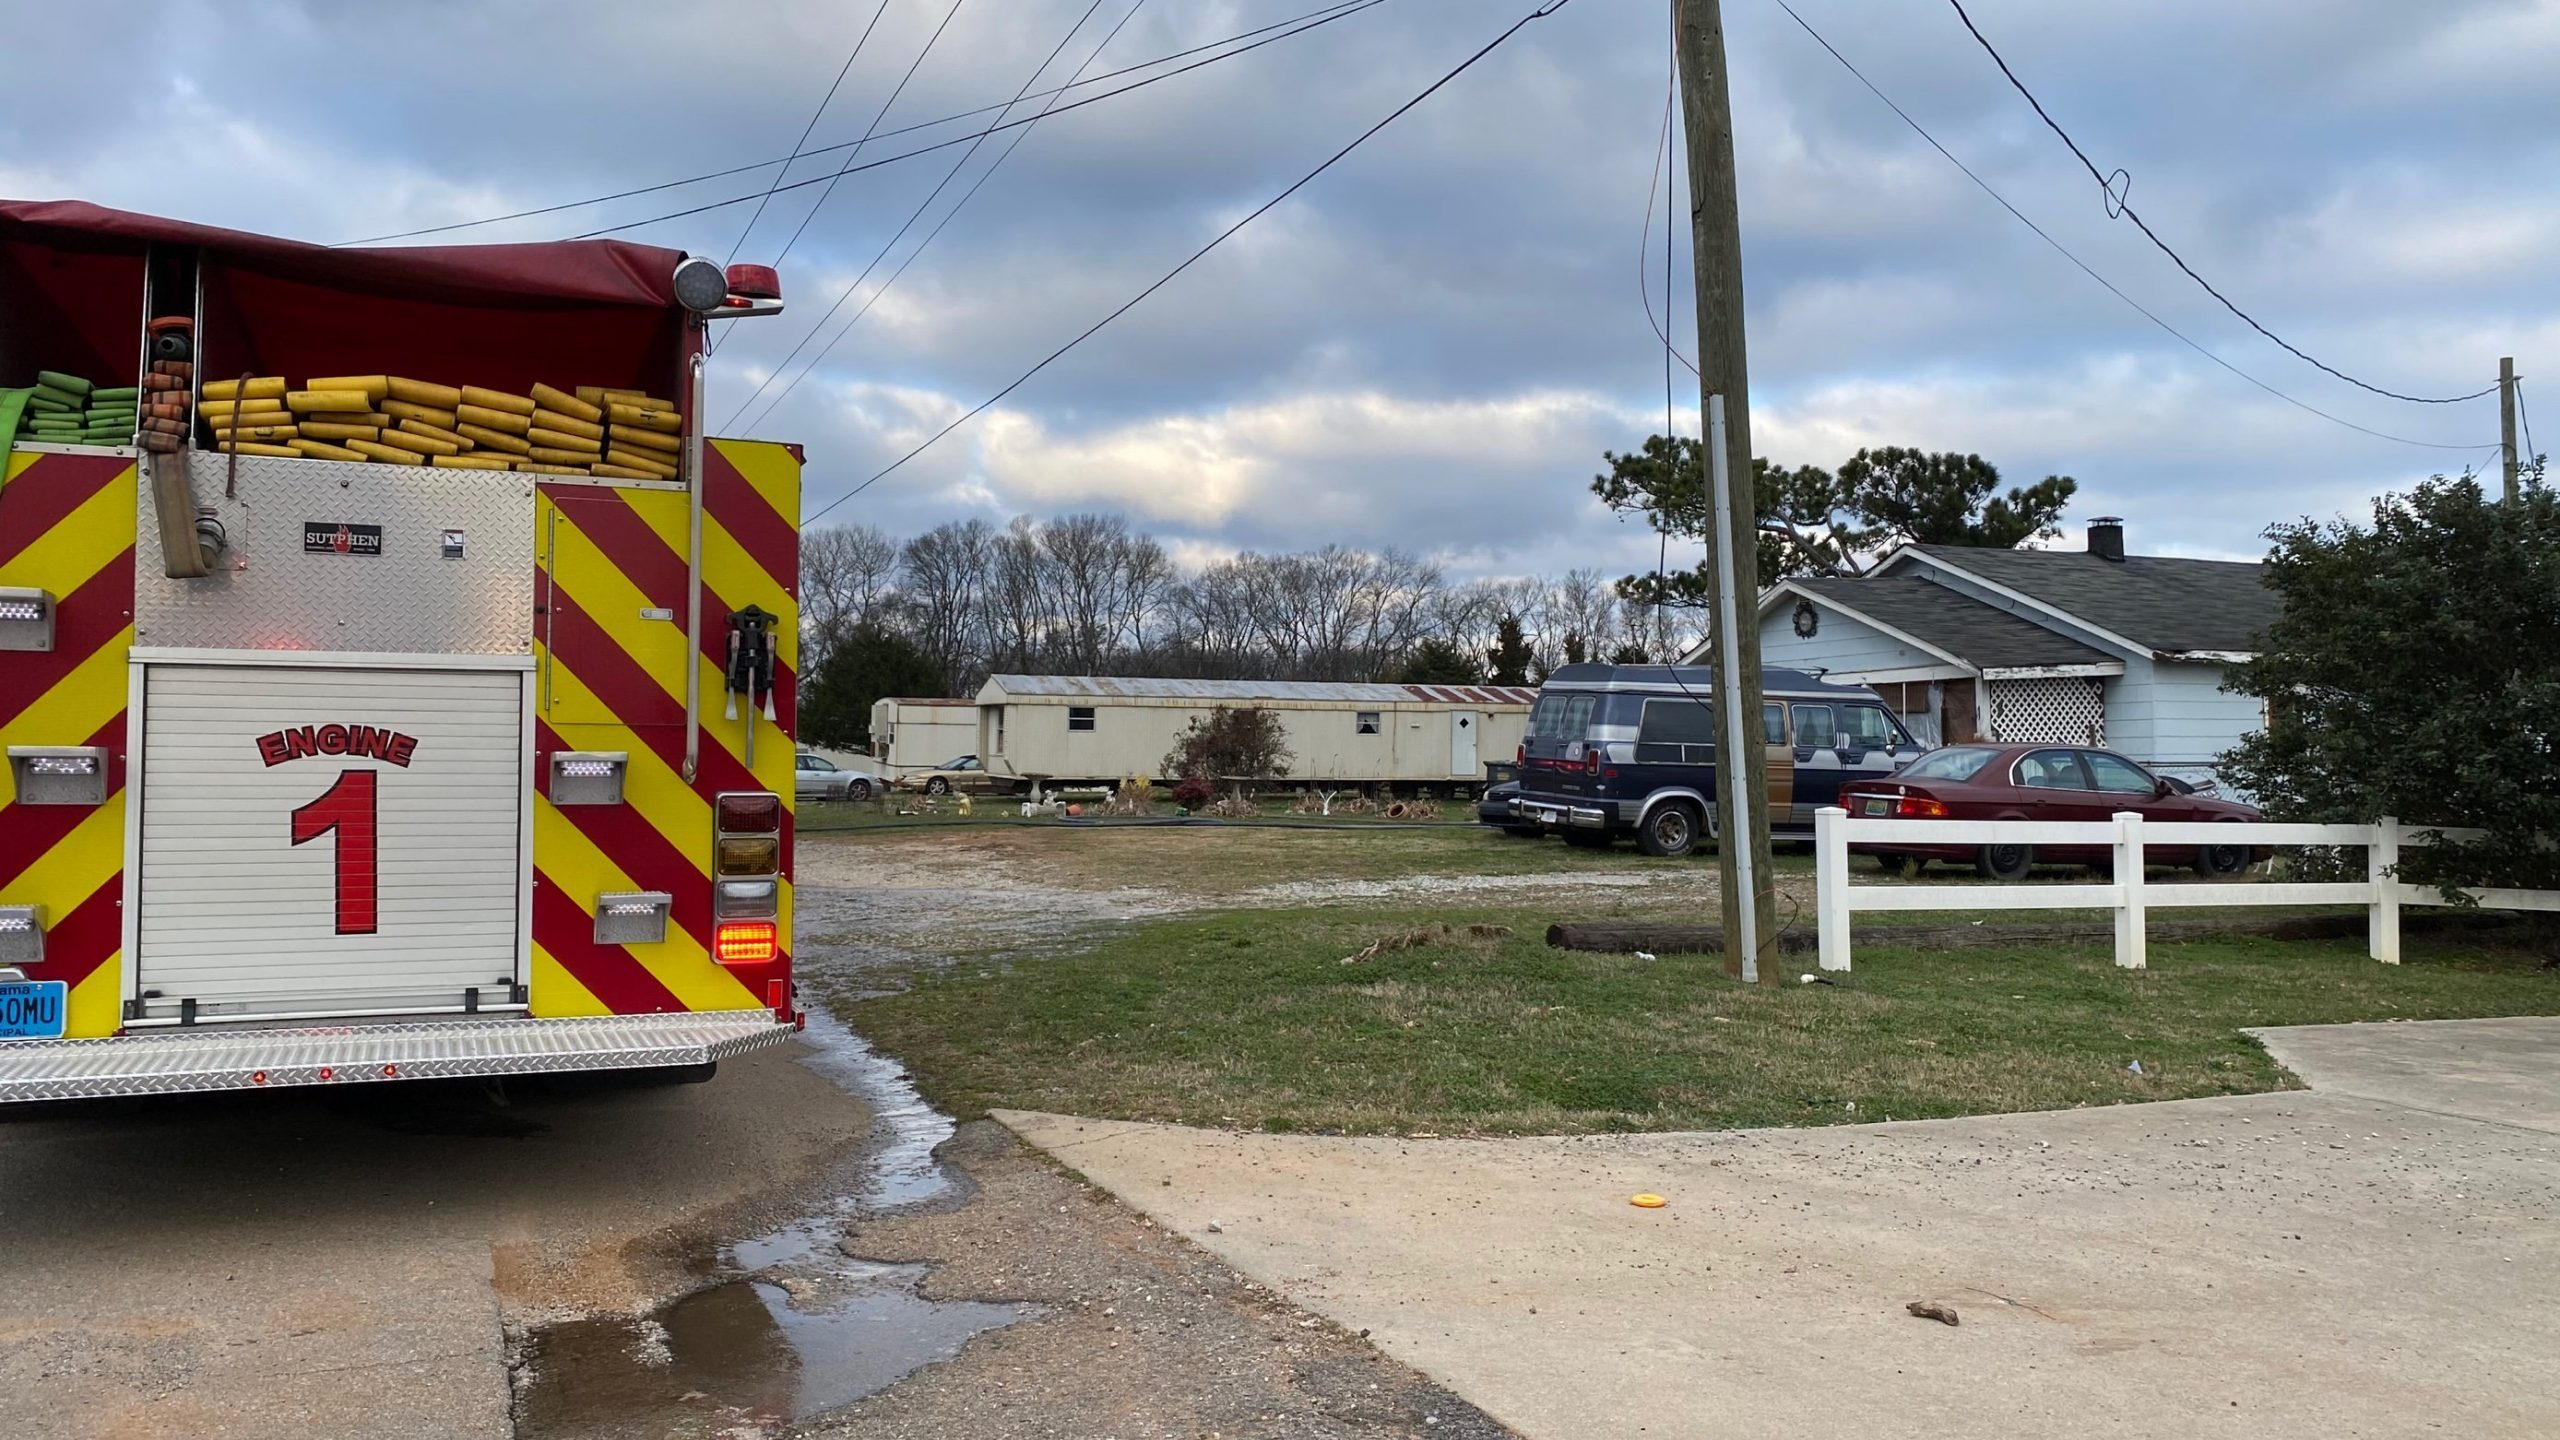 Decatur Fire and Rescue responded to a structure fire Tuesday morning.